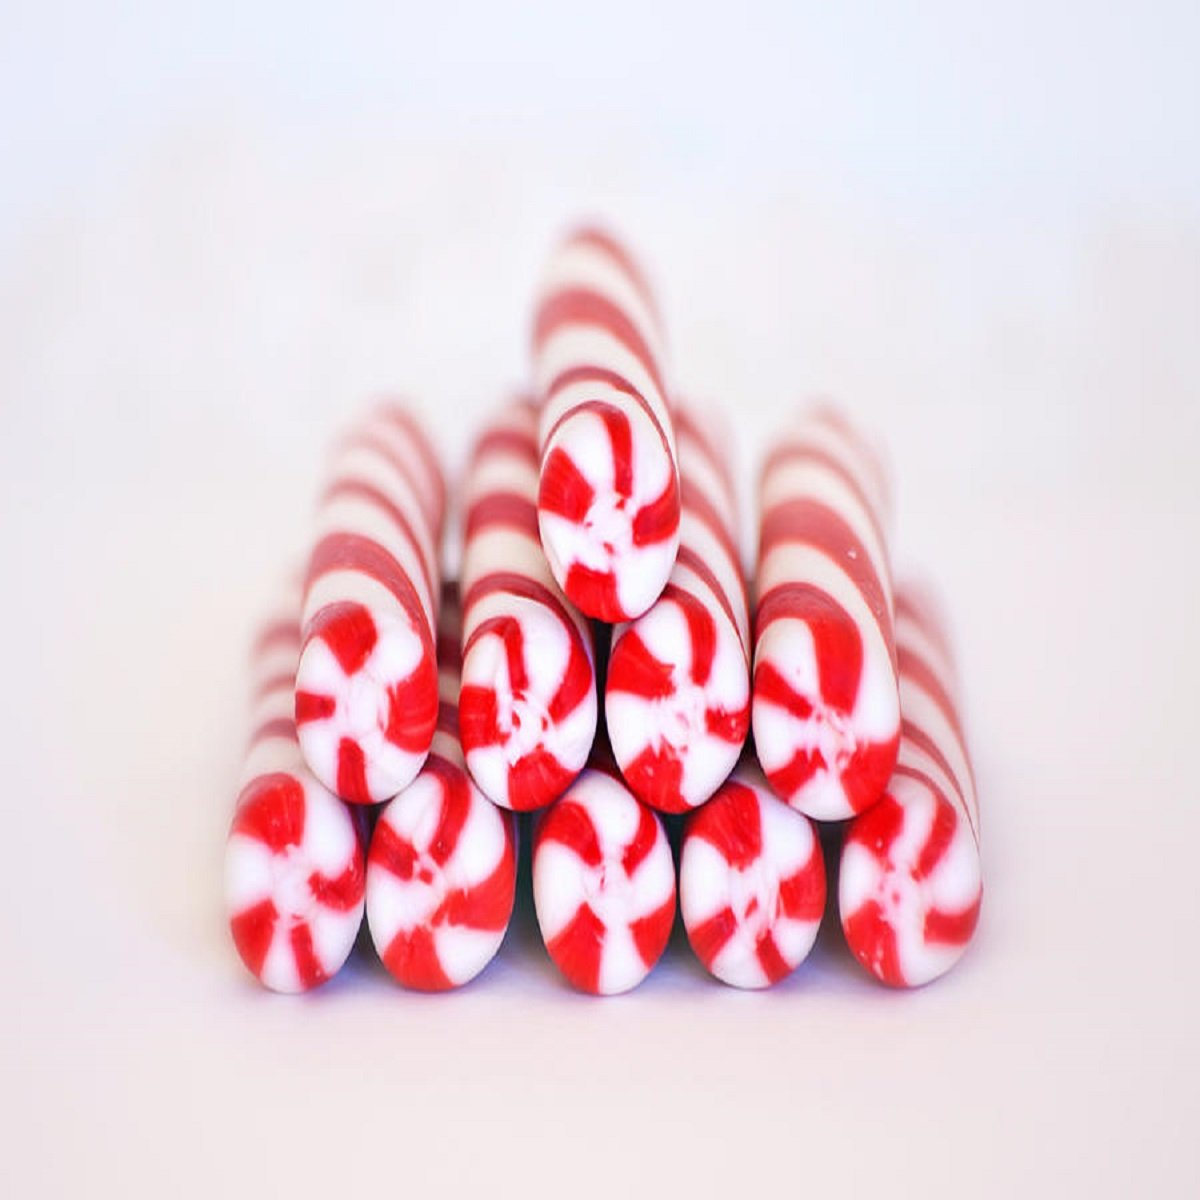 PEPPERMINT TWIST FRAGRANCE OIL - 16 OZ/ 1 LB - FOR CANDLE & SOAP MAKING BY VIRGINIA CANDLE SUPPLY - FREE S&H IN USA